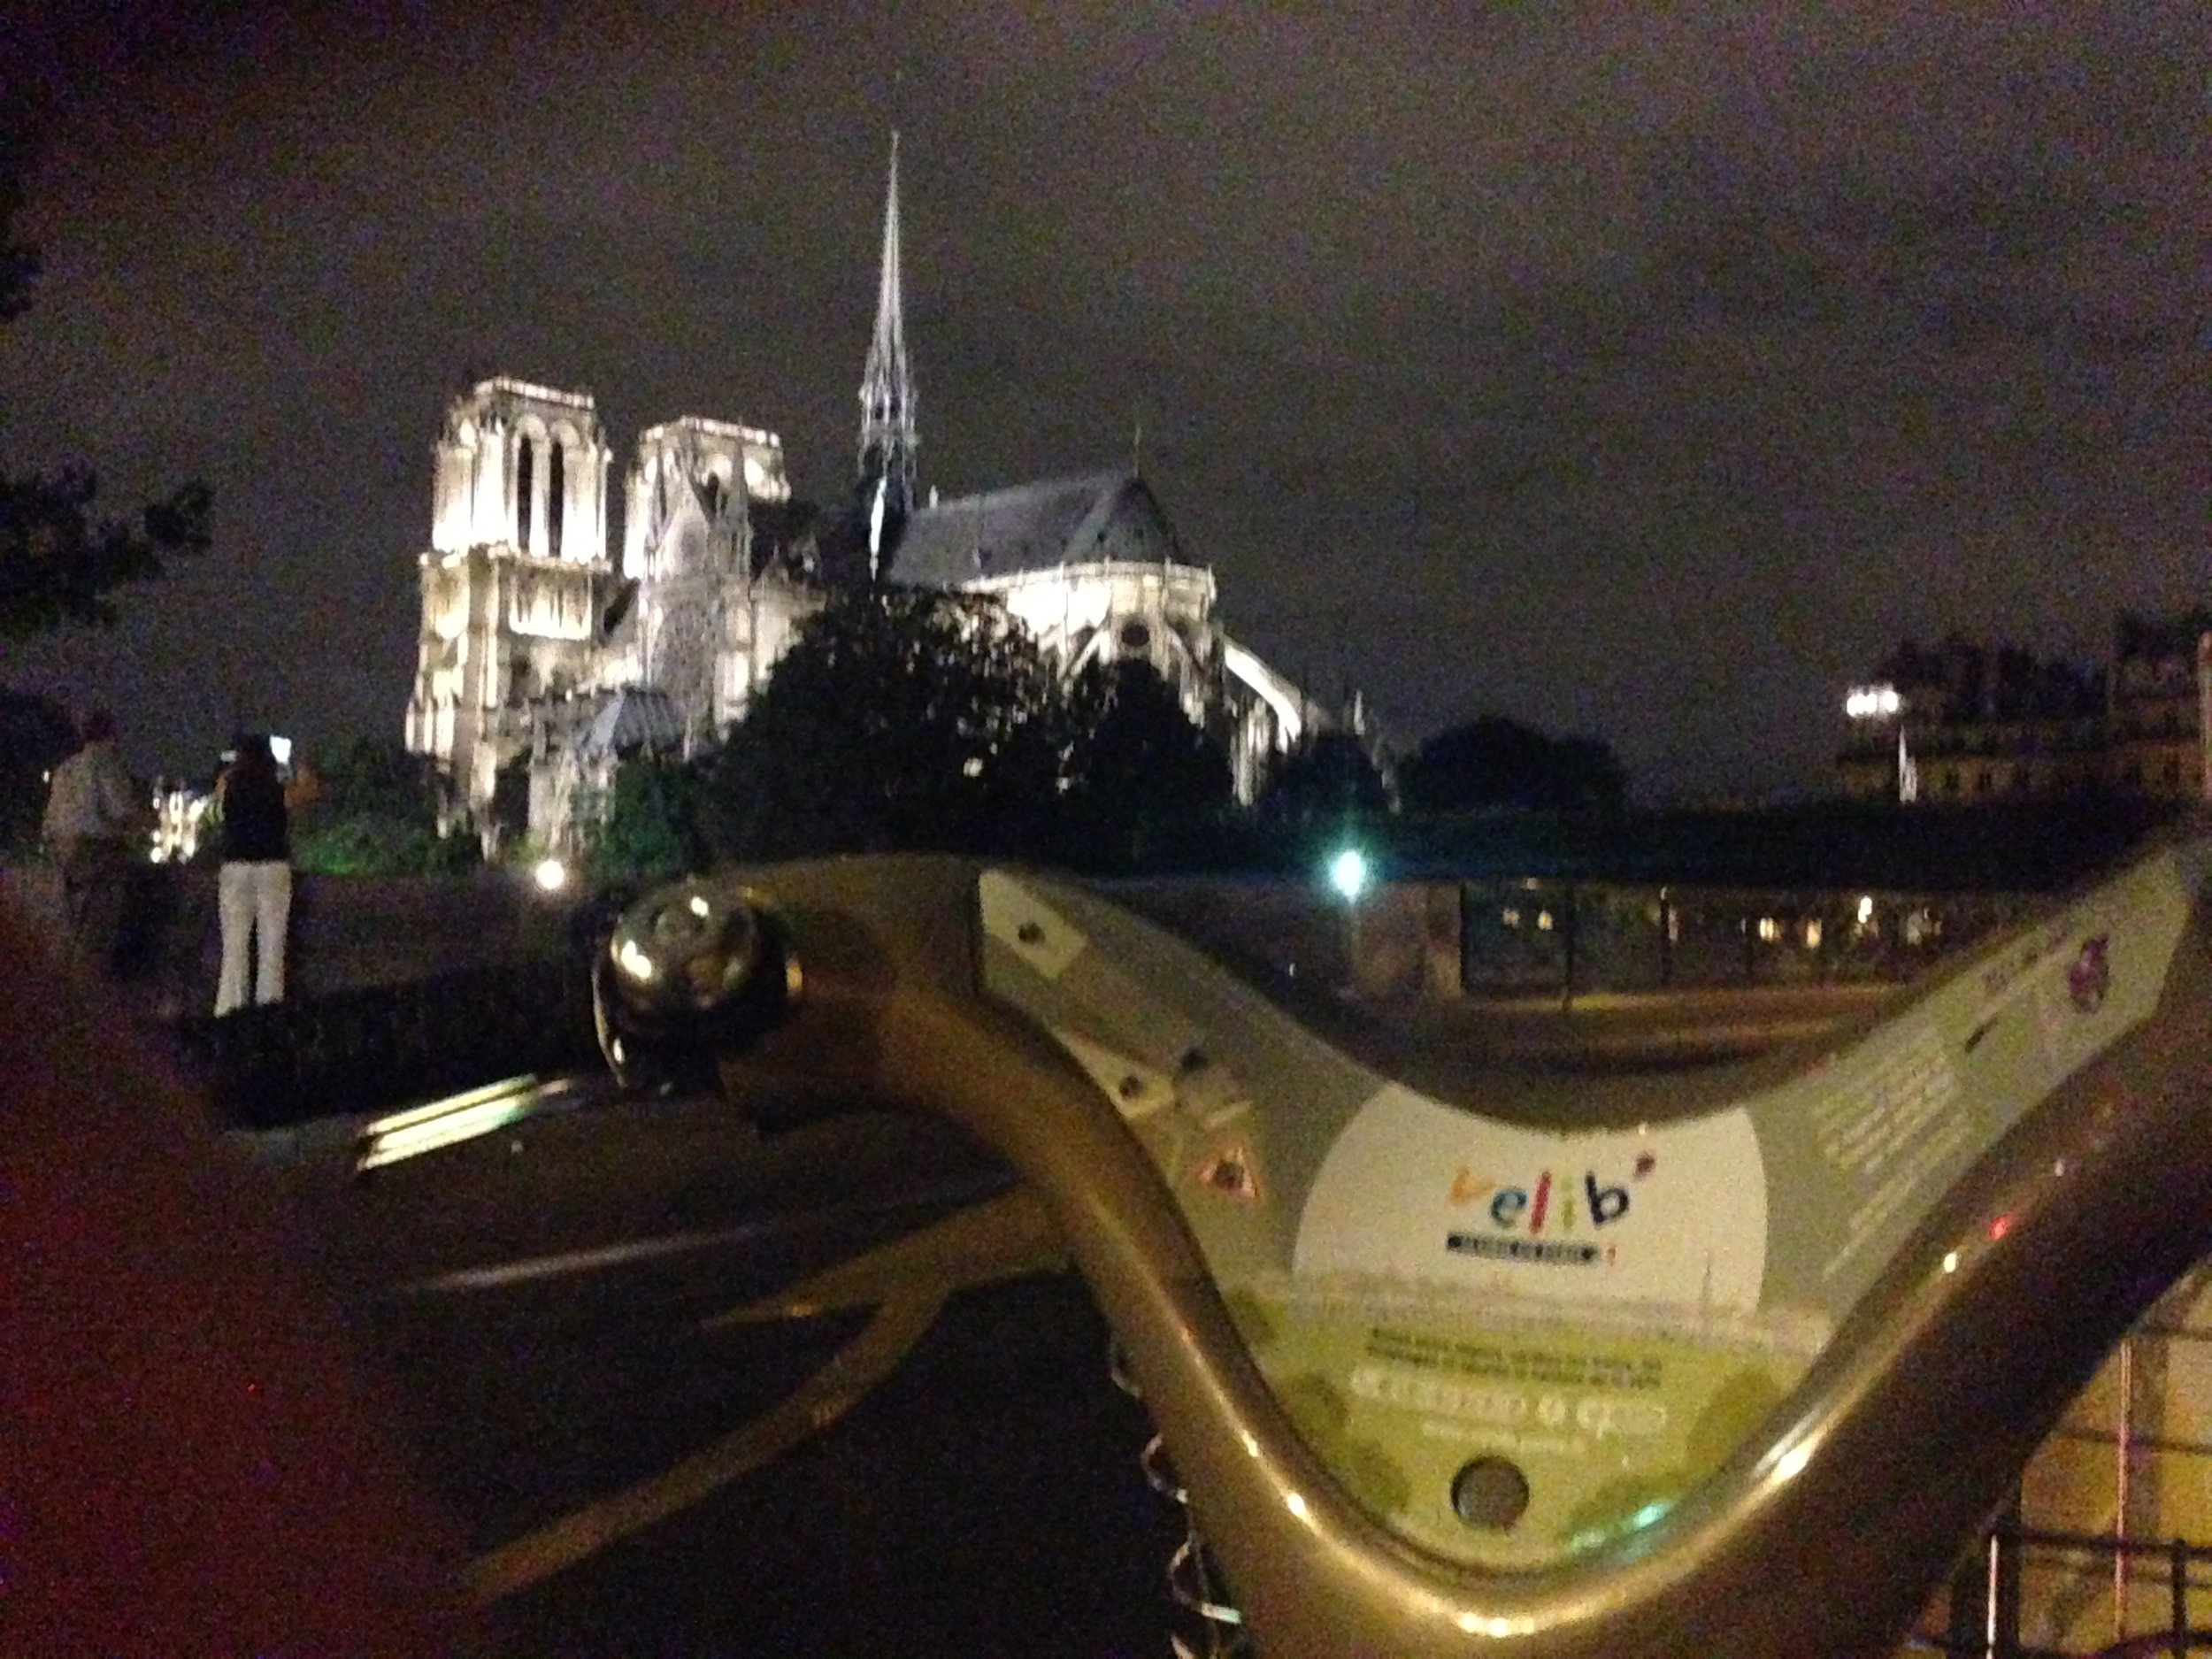 Pedalling past the Notre-Dame at night